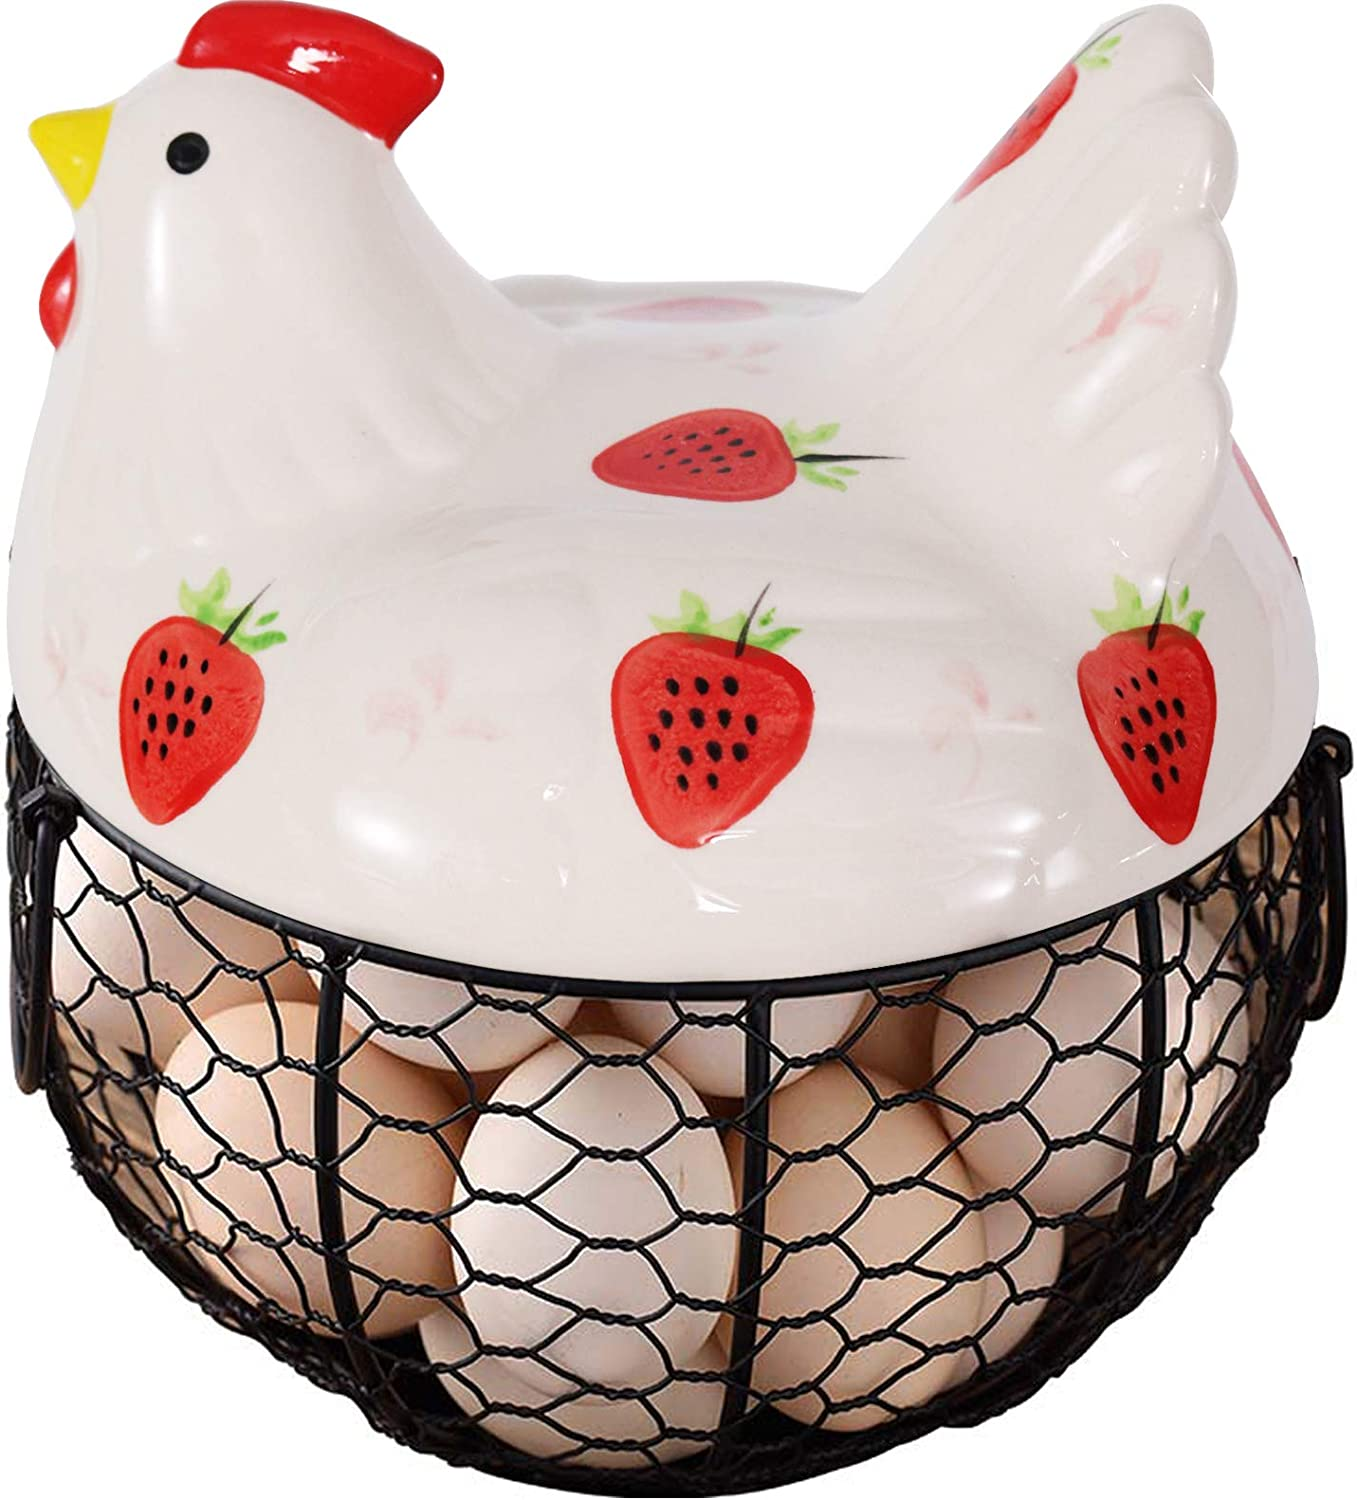 Egg Baskets Challenge the lowest price for Fresh Eggs Super popular specialty store ho fresh Chicken Ceramic